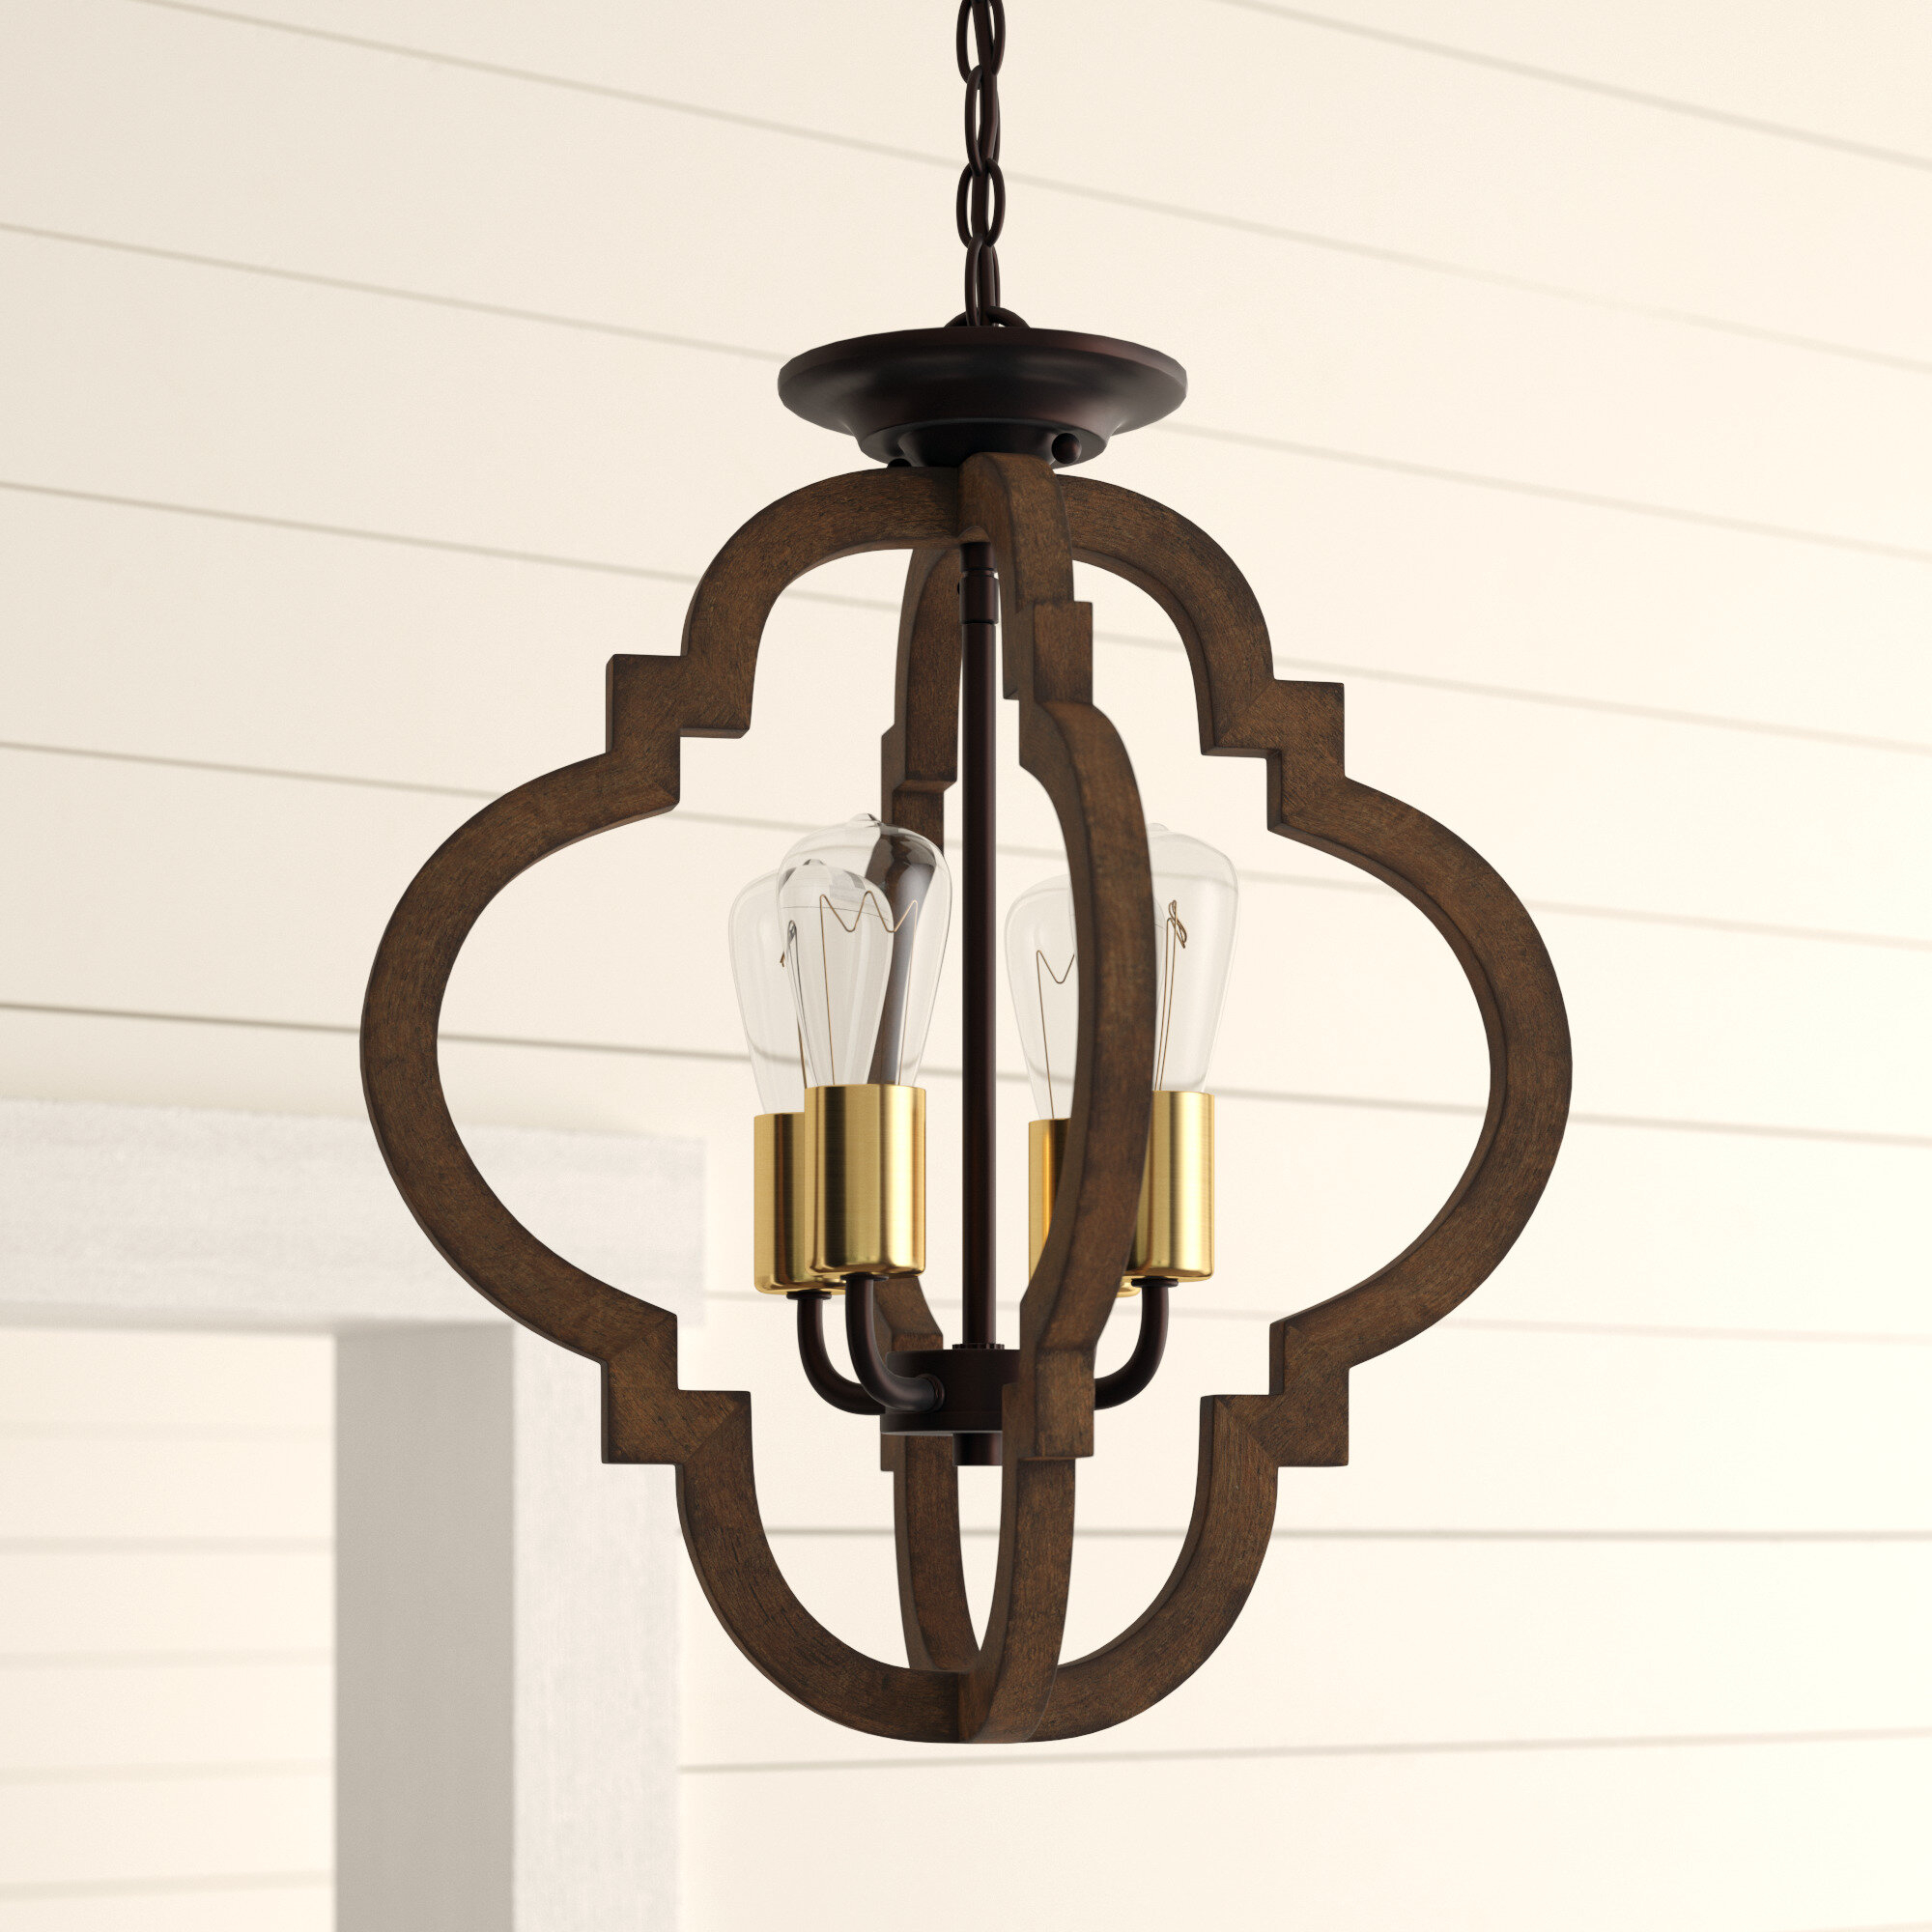 Kaycee 4 Light Geometric Chandelier Regarding Bennington 4 Light Candle Style Chandeliers (View 16 of 30)